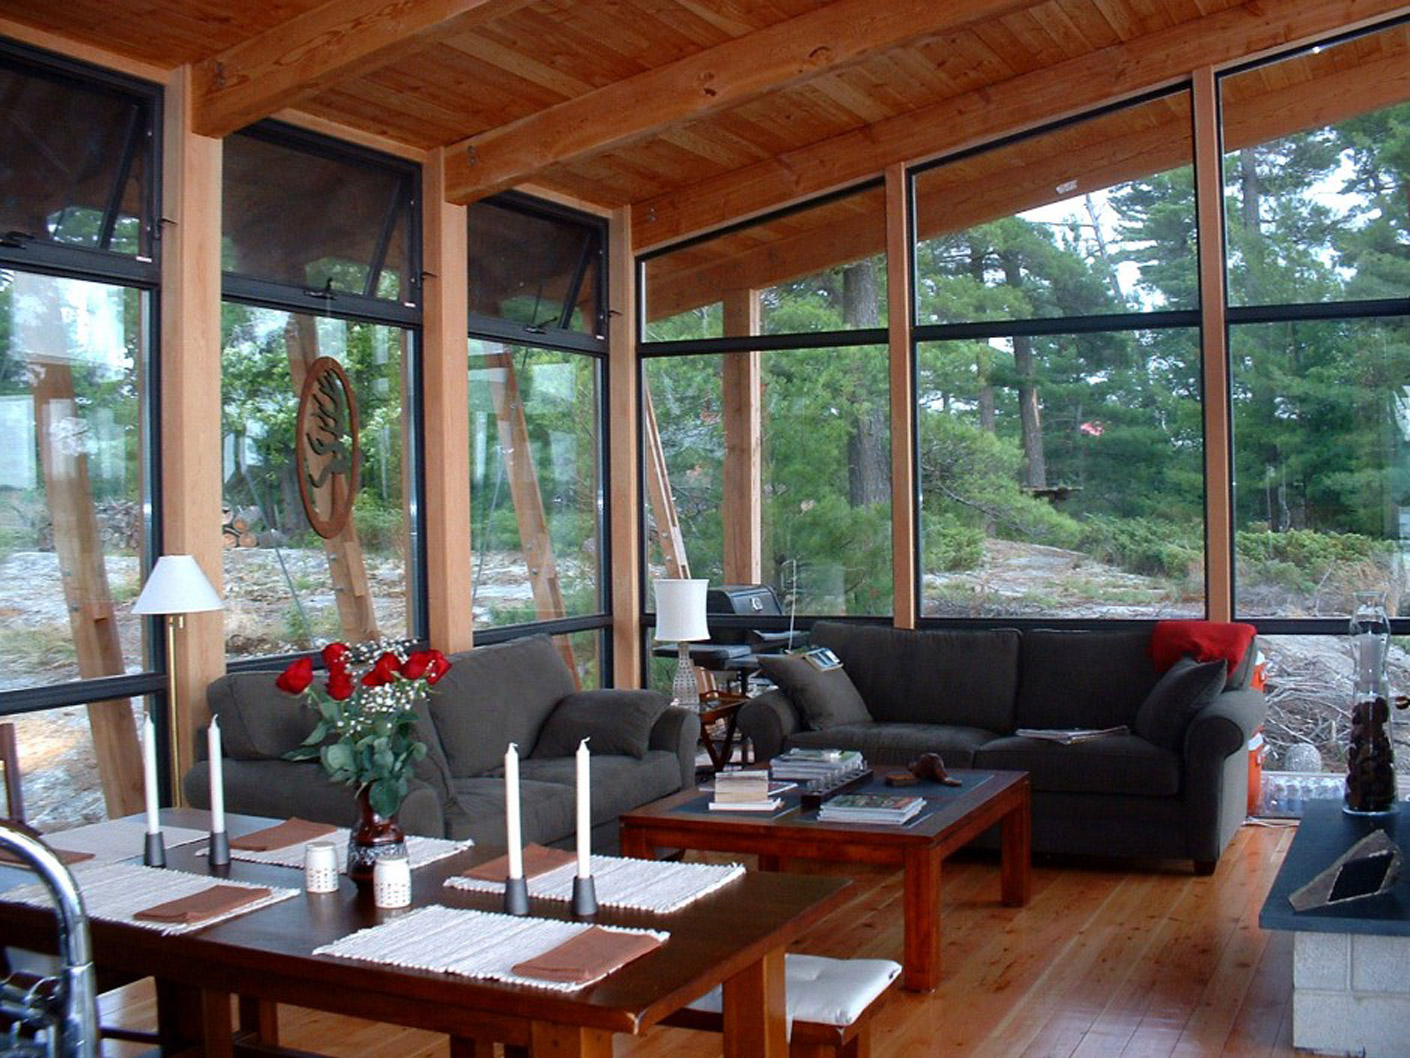 Living room in Georgian Bay cottage with large curtain walls, framed into post and beam wood cottage structure